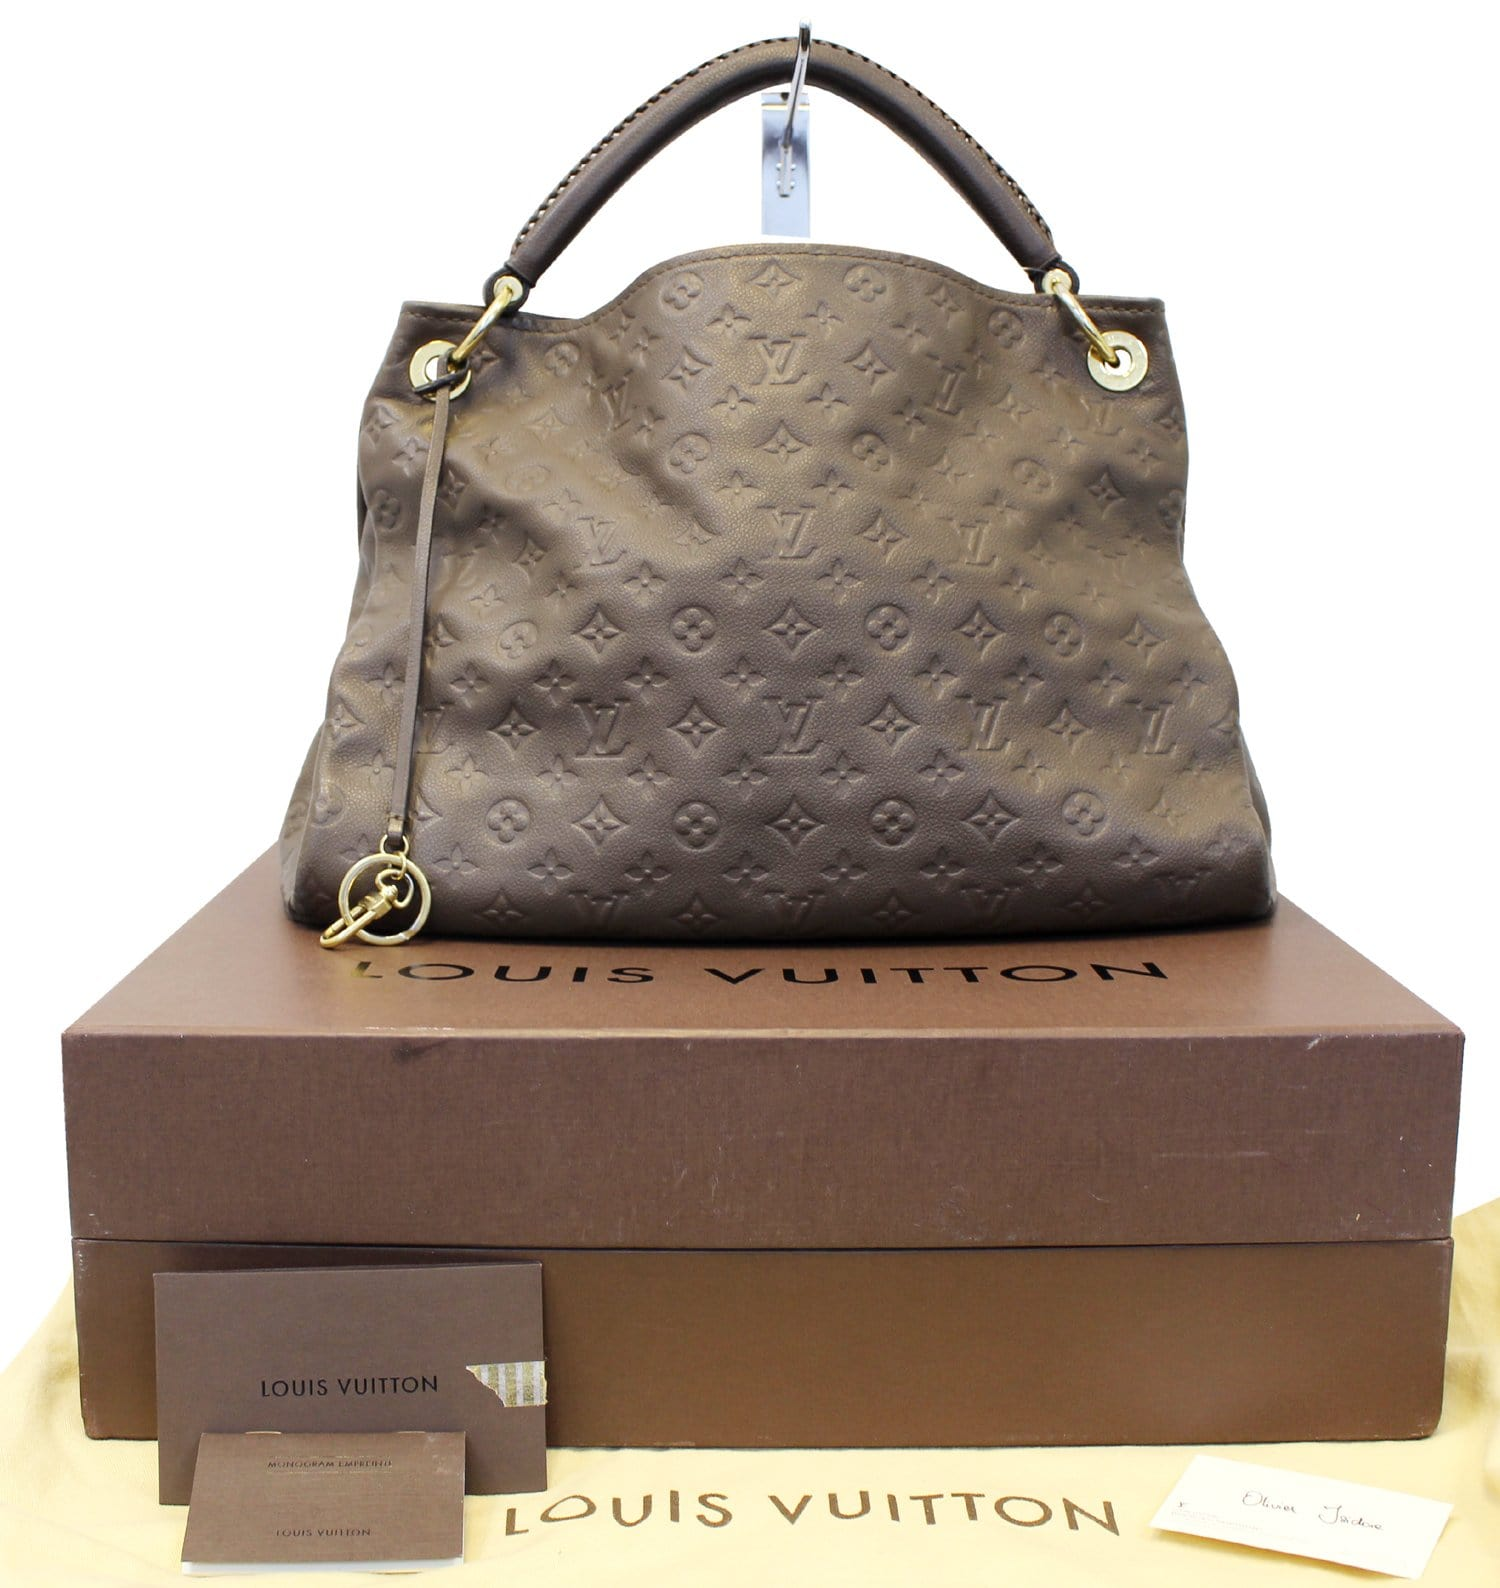 b5b74e1fa37a5 Authentic LOUIS VUITTON Empreinte Ombre Monogram Artsy Shoulder Bag TT